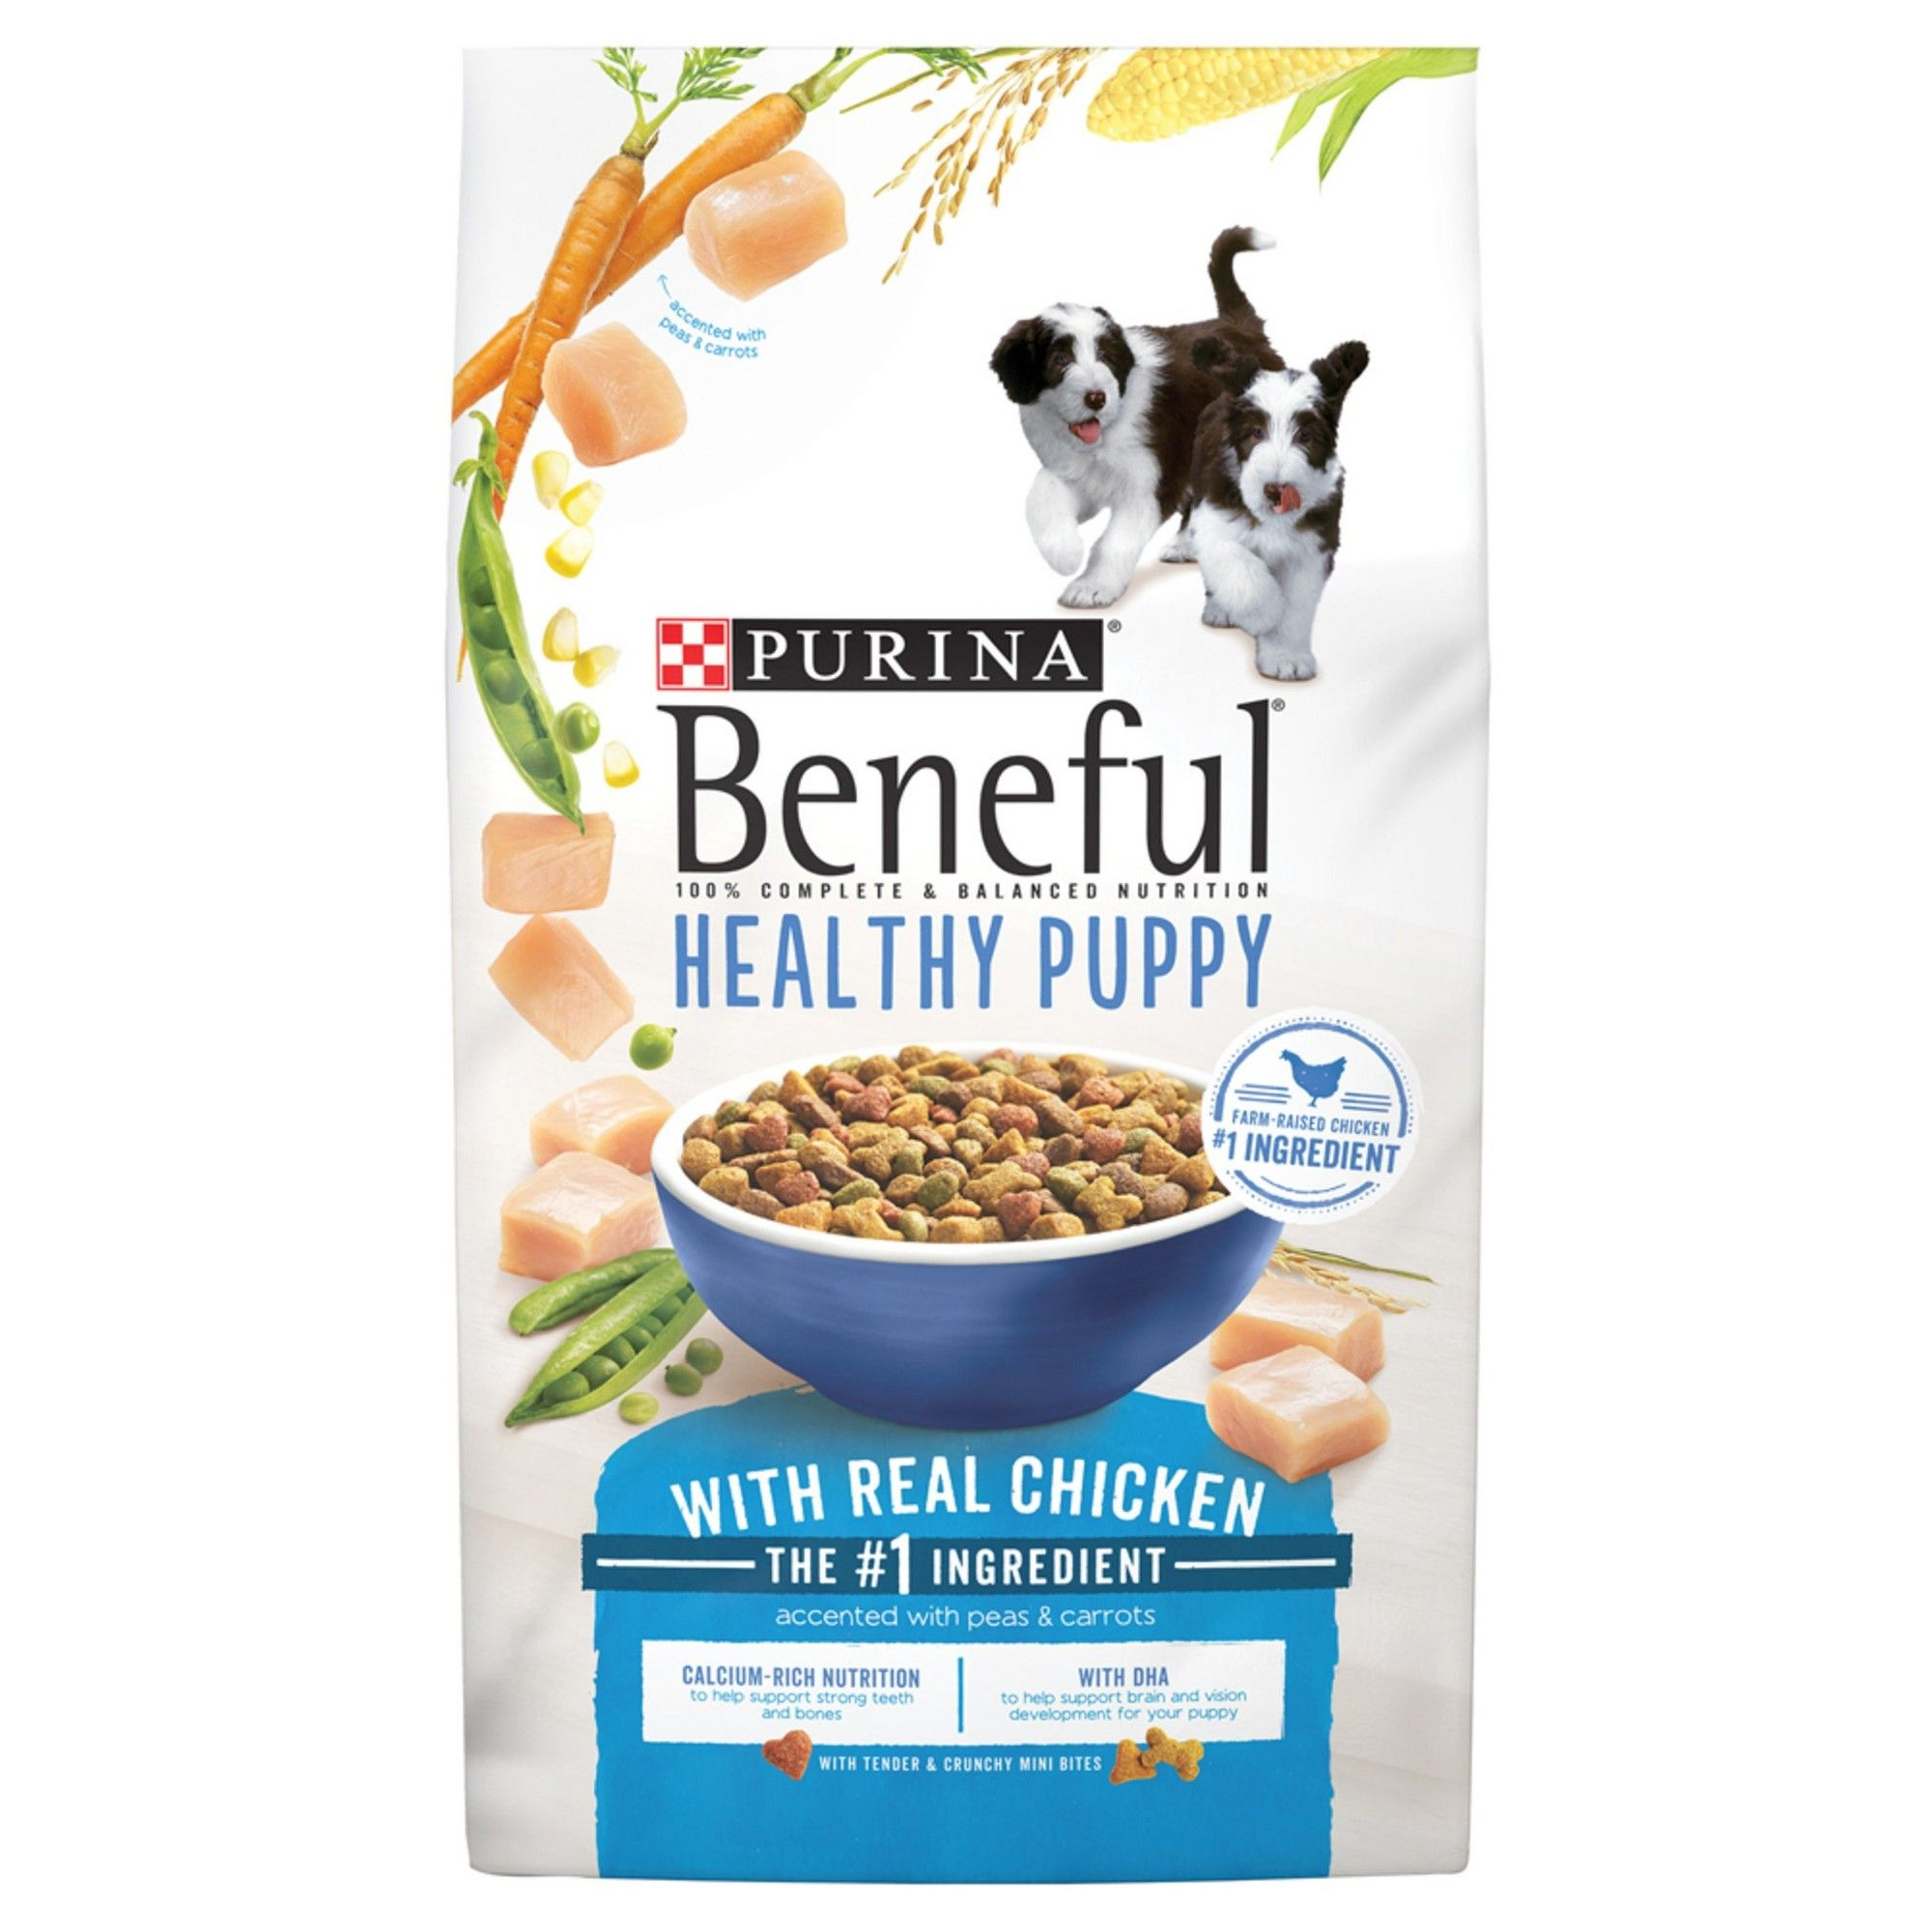 Purina Beneful Healthy Puppy Dry Dog Food 15 5lbs Products